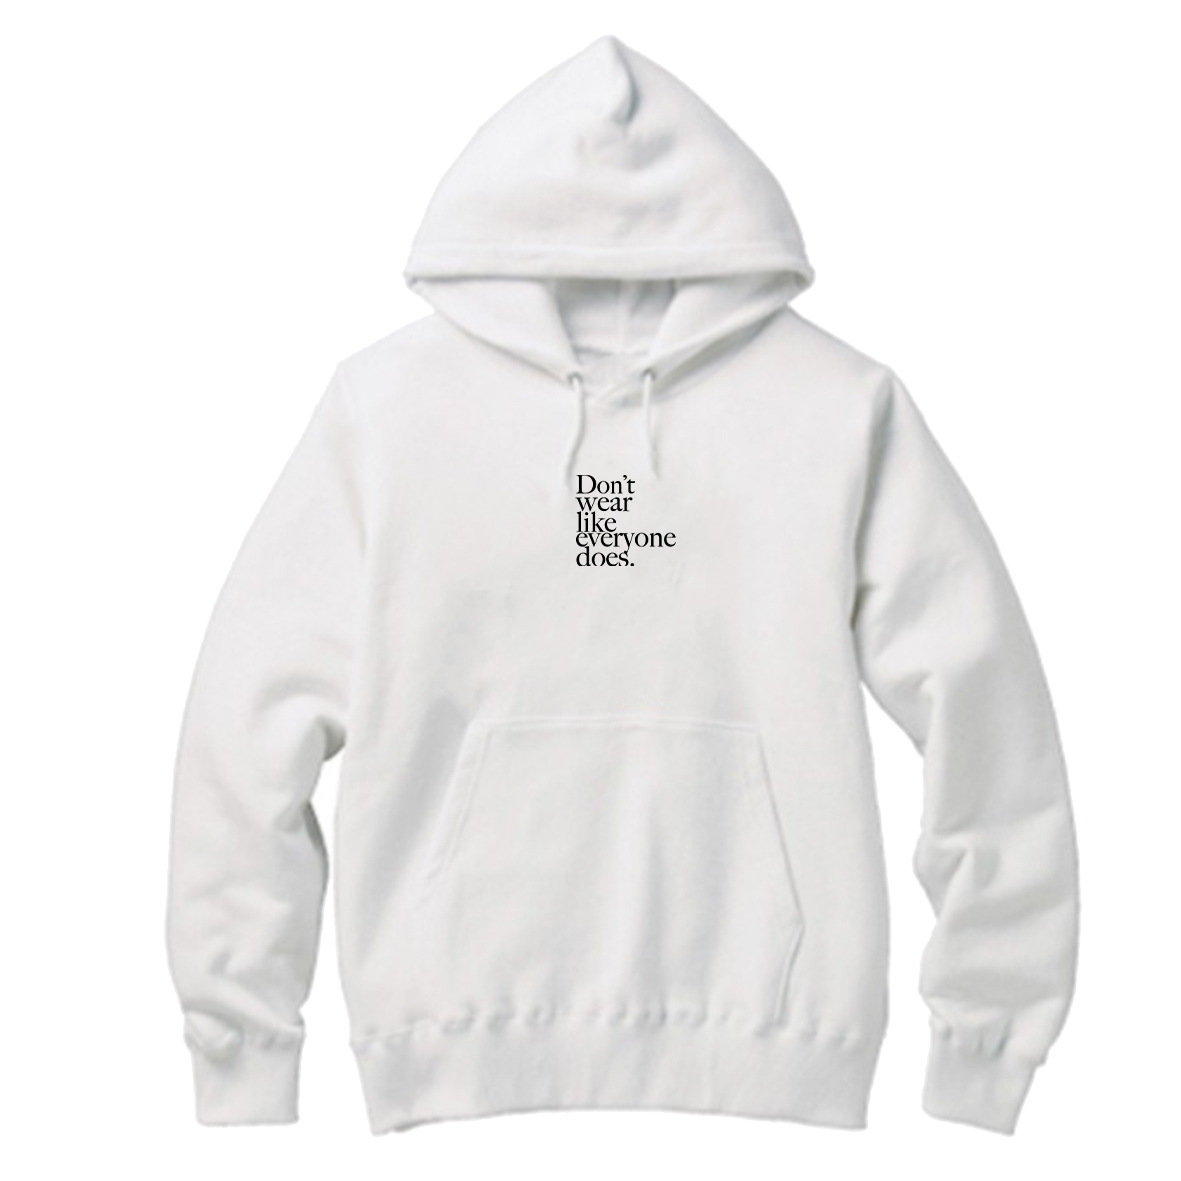 【Cat & Parfum】Don't wear like everyone does. Embroidery Logo Cotton Hoodie